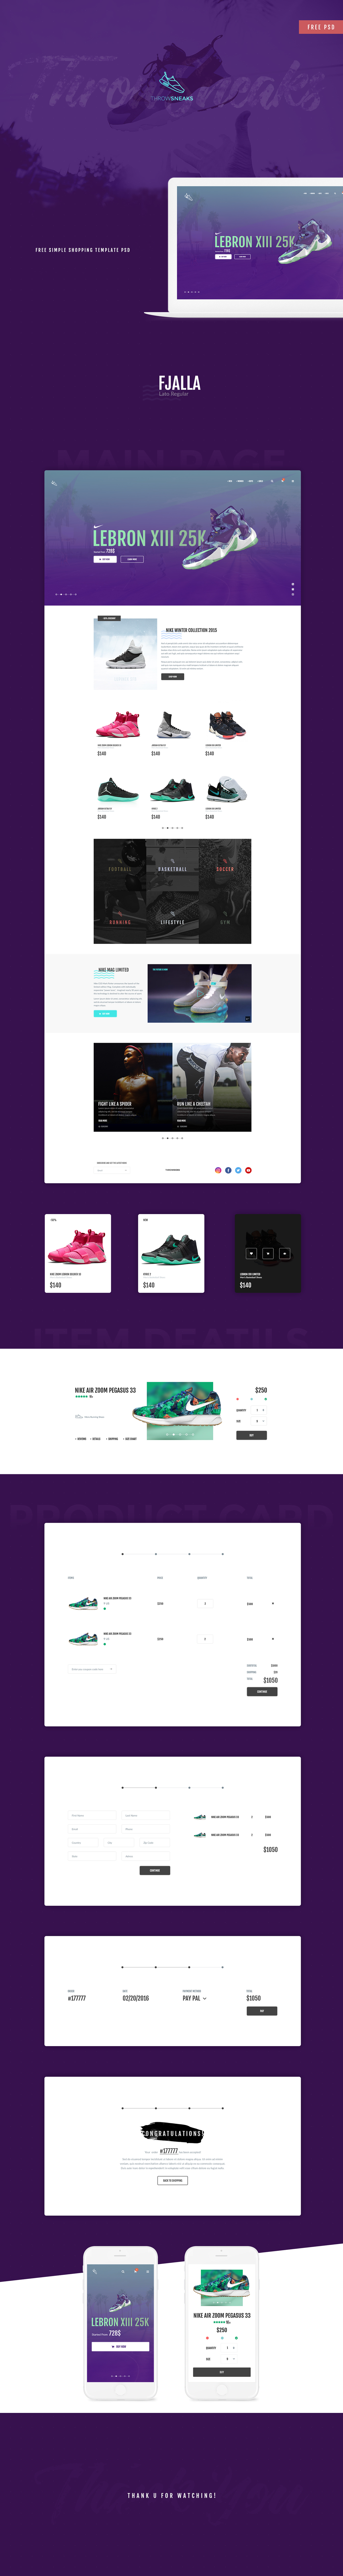 free Ecommerce store purple Nike sneakers psd download shoes Fashion